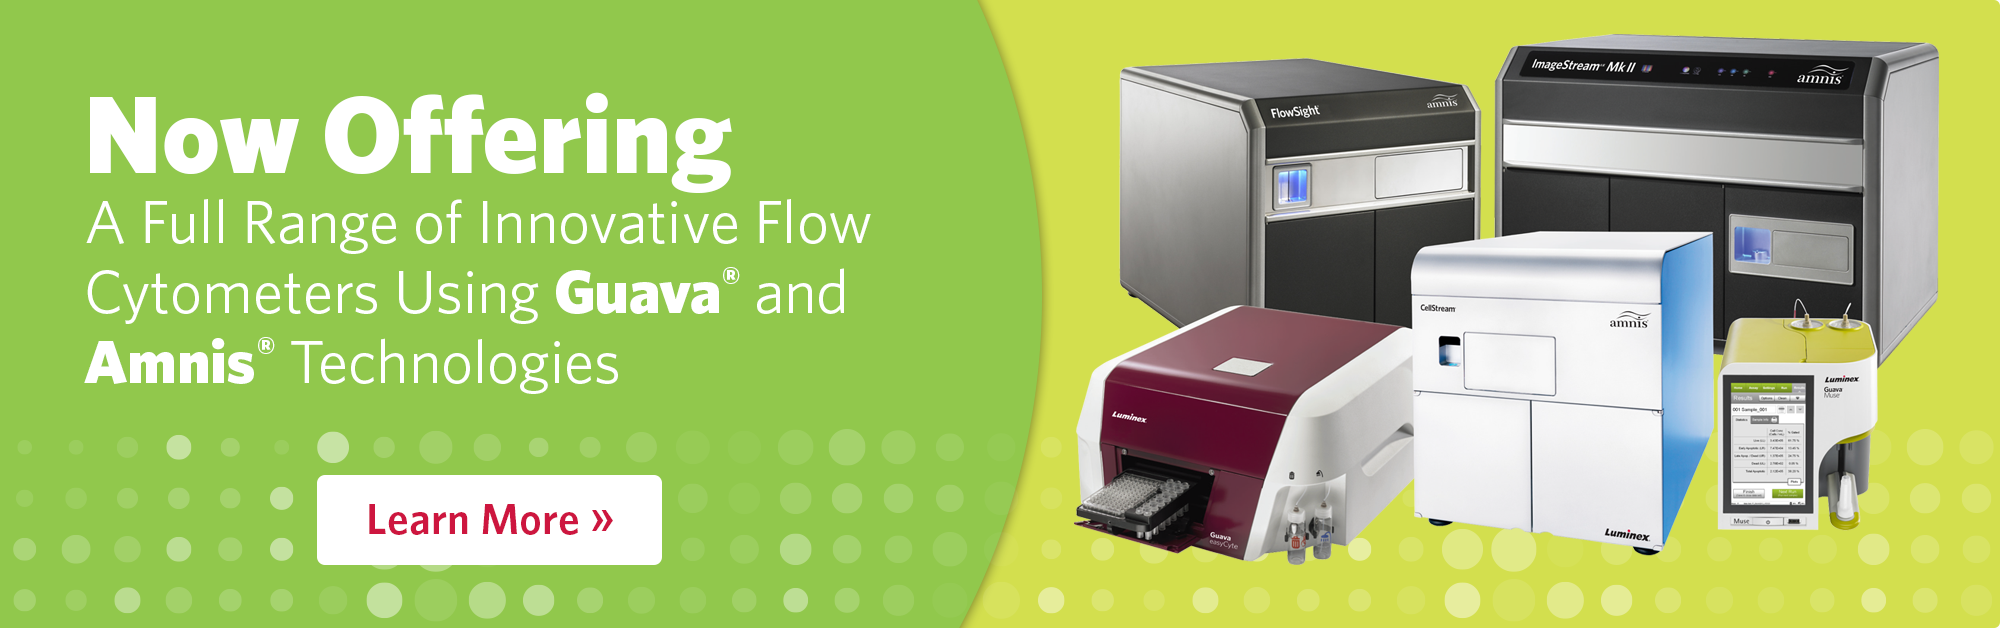 Luminex Imaging and Flow Cytometry